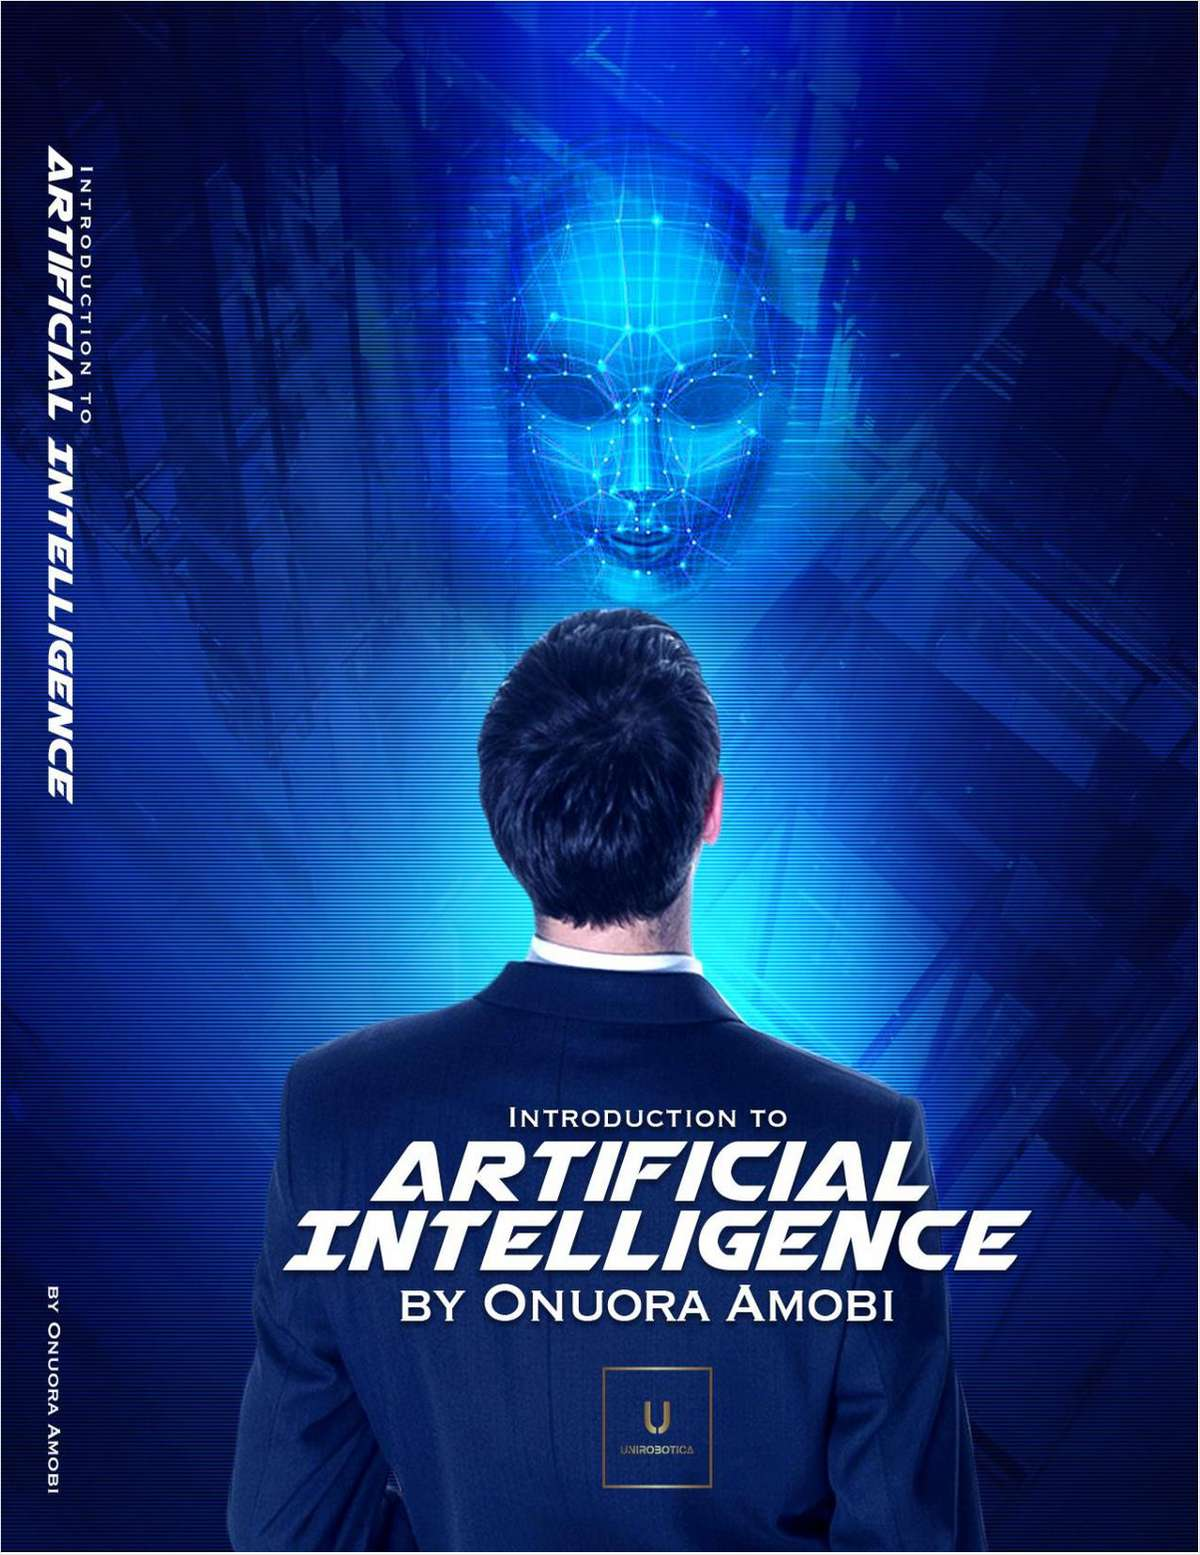 Introduction to Artificial Intelligence (a $14.95 Value) FREE